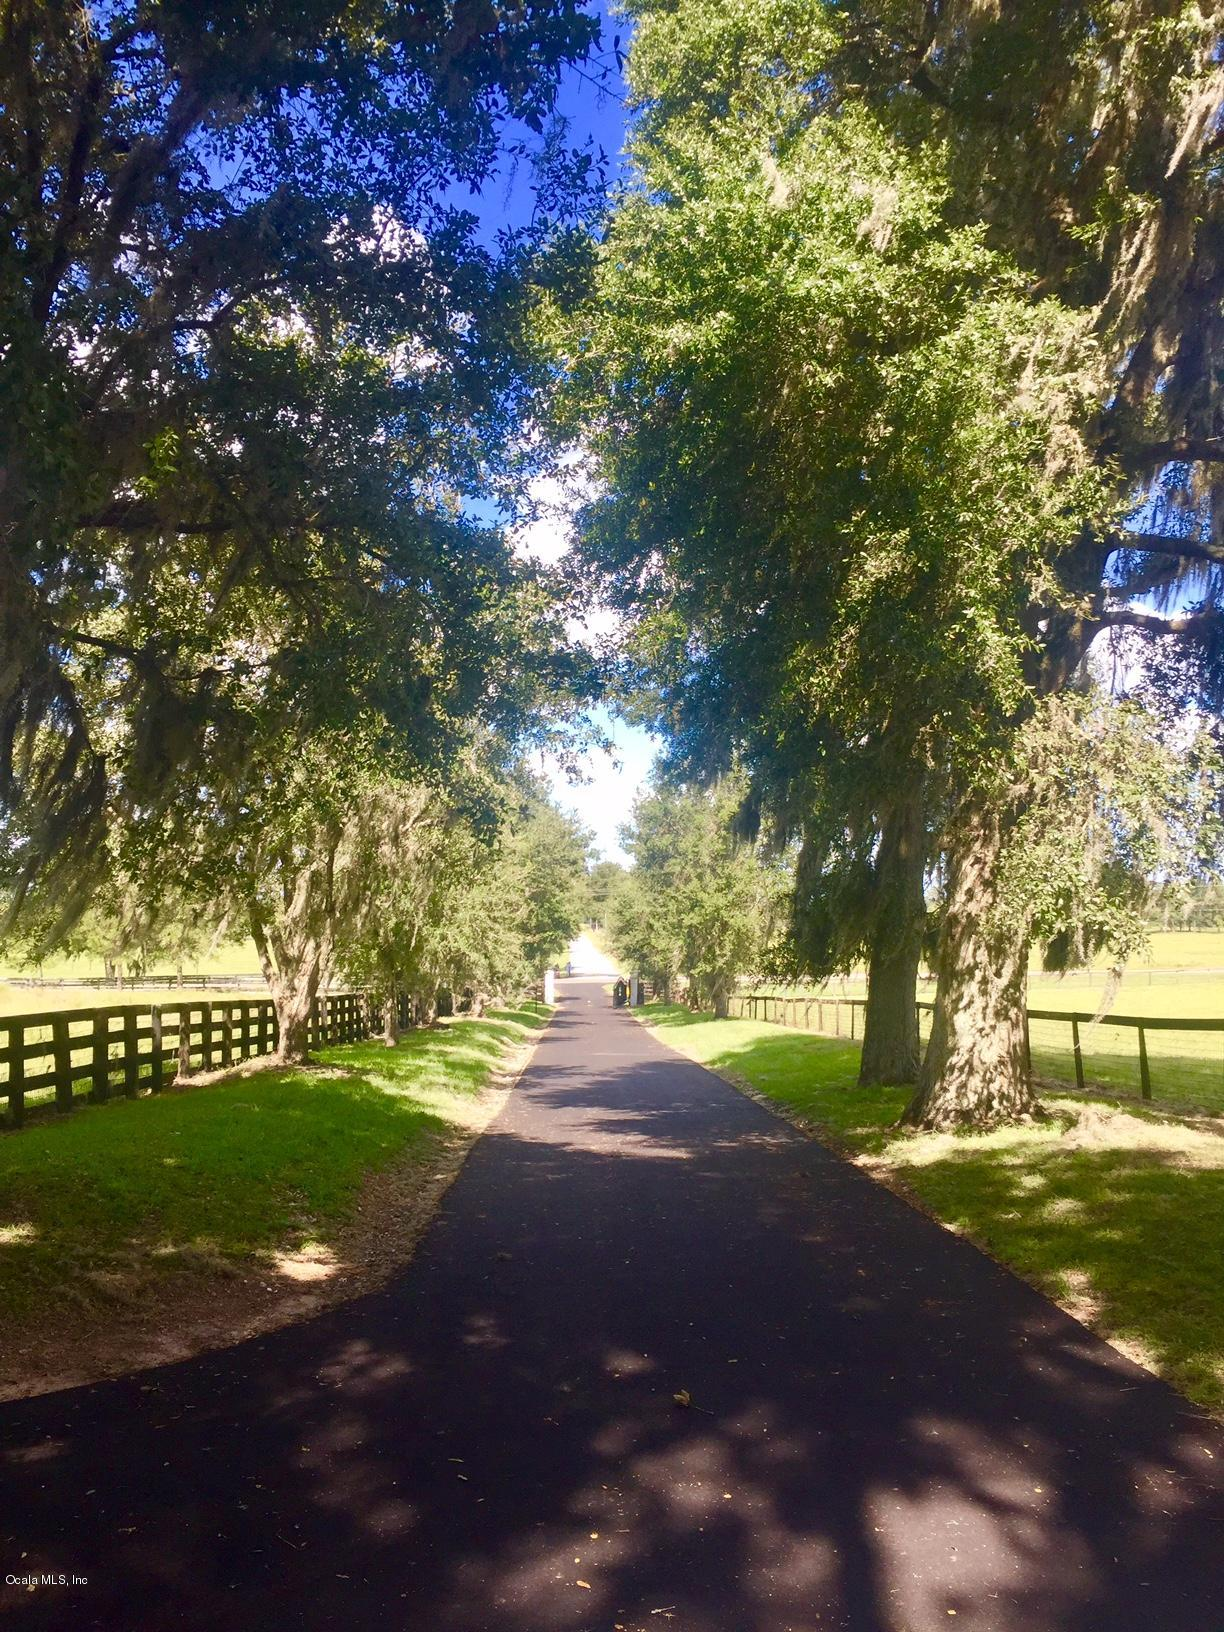 43 ACRE EQUESTRIAN FACILITY GATED 1 MILE FROM HITTS